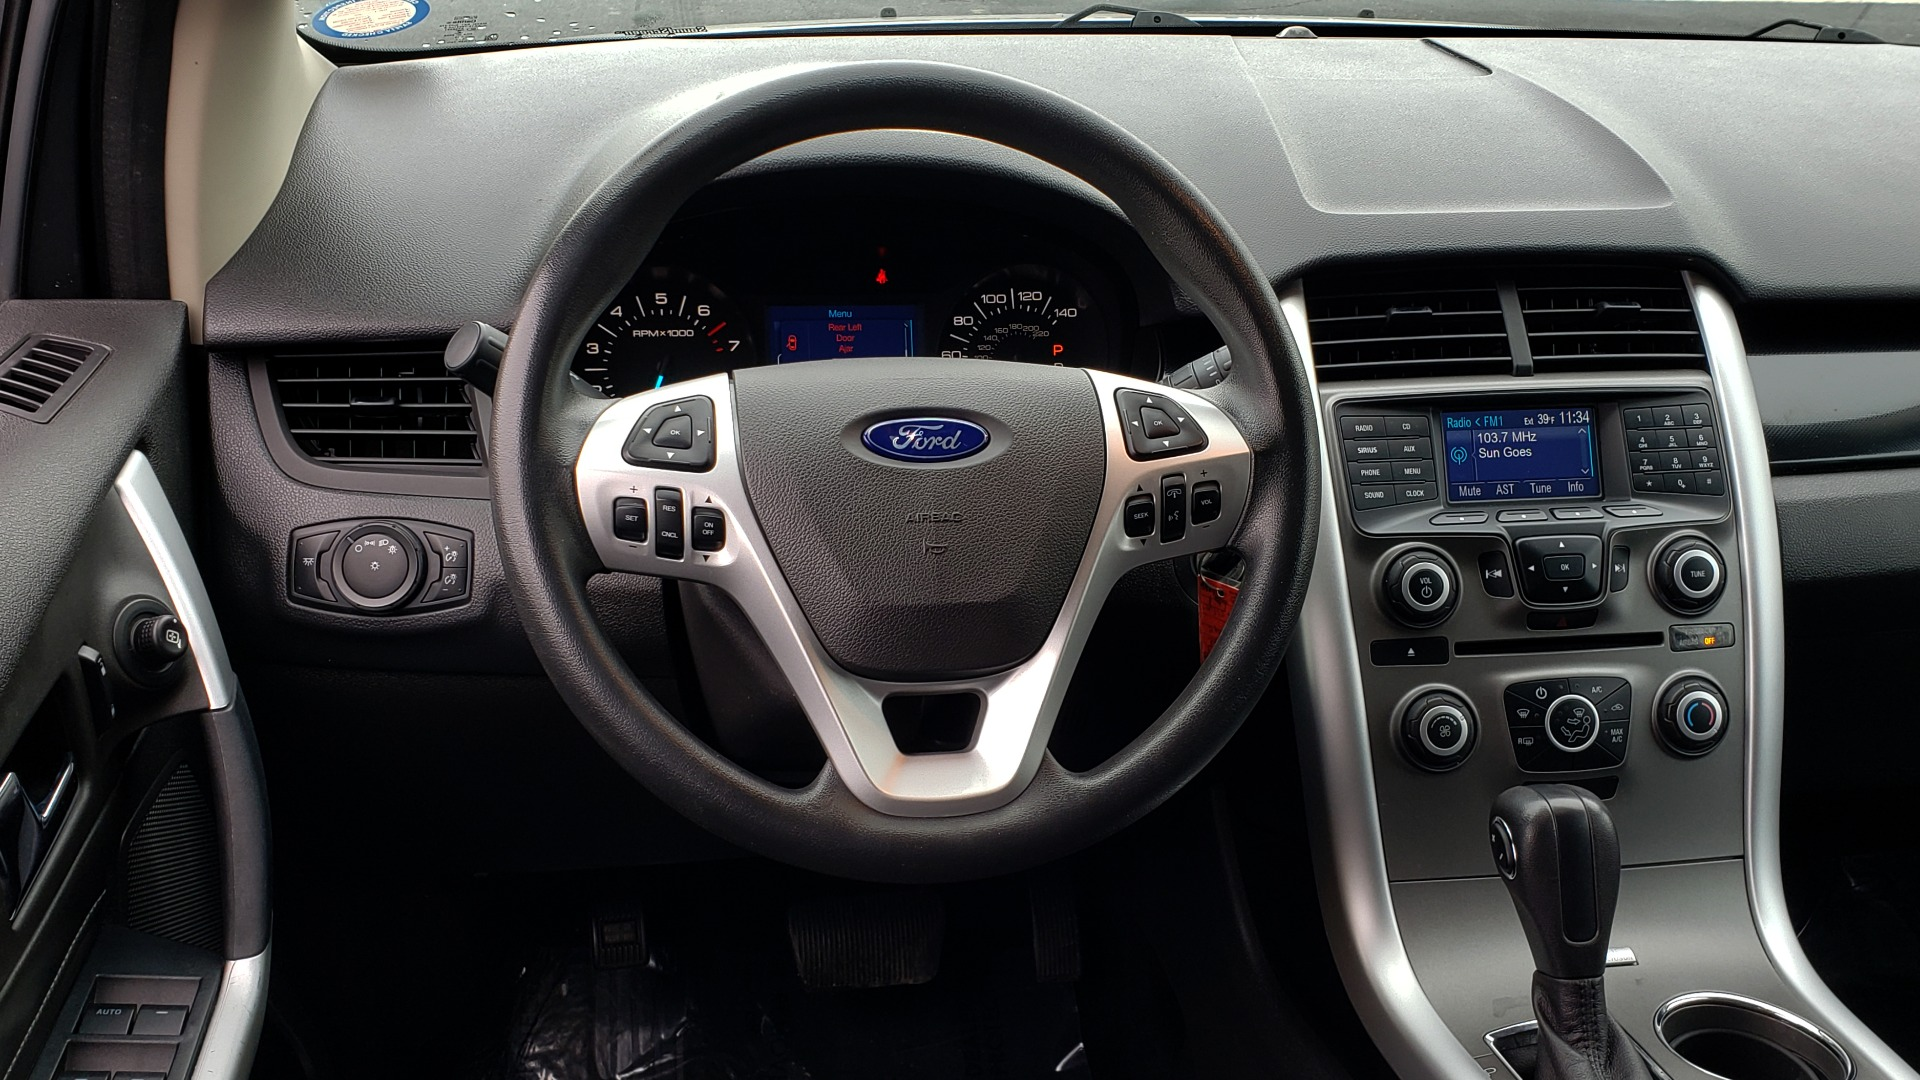 Used 2013 Ford EDGE SE / AWD / 18 IN WHEELS / SYNC / 3.5L V6 / AUTO for sale Sold at Formula Imports in Charlotte NC 28227 31